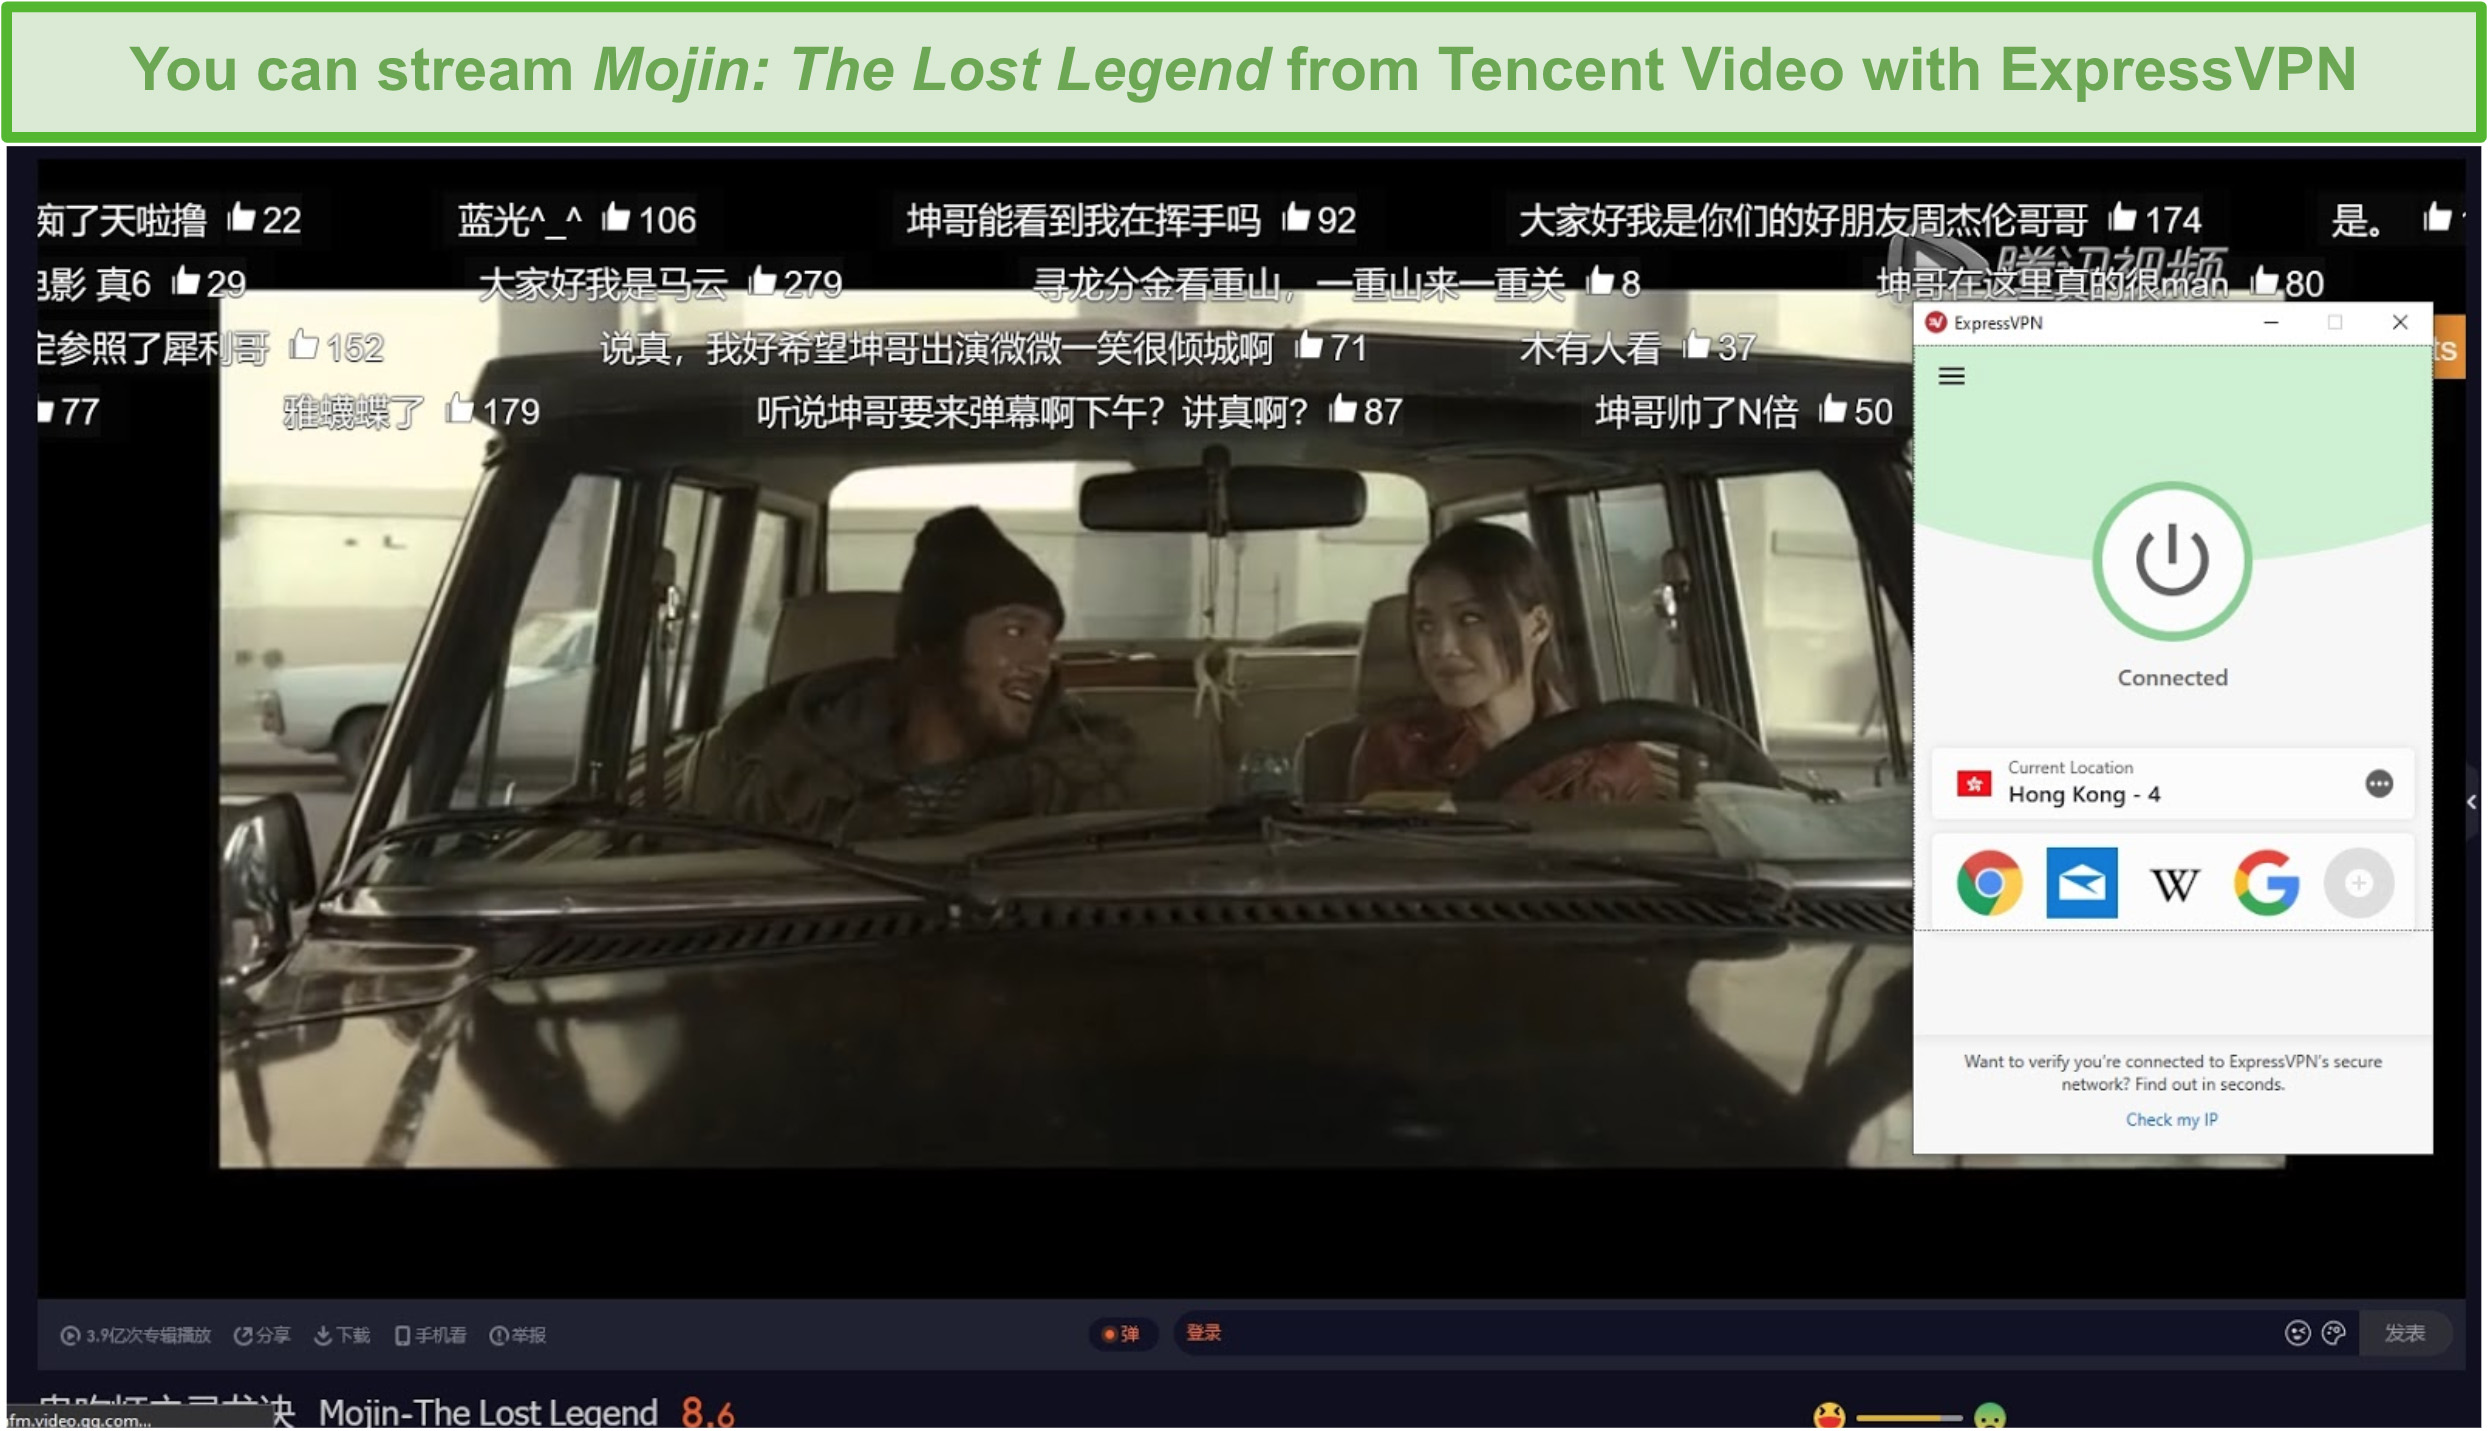 ExpressVPN connected to a Hong Kong server and playing Mojin: The Lost Legend on Tencent Video.